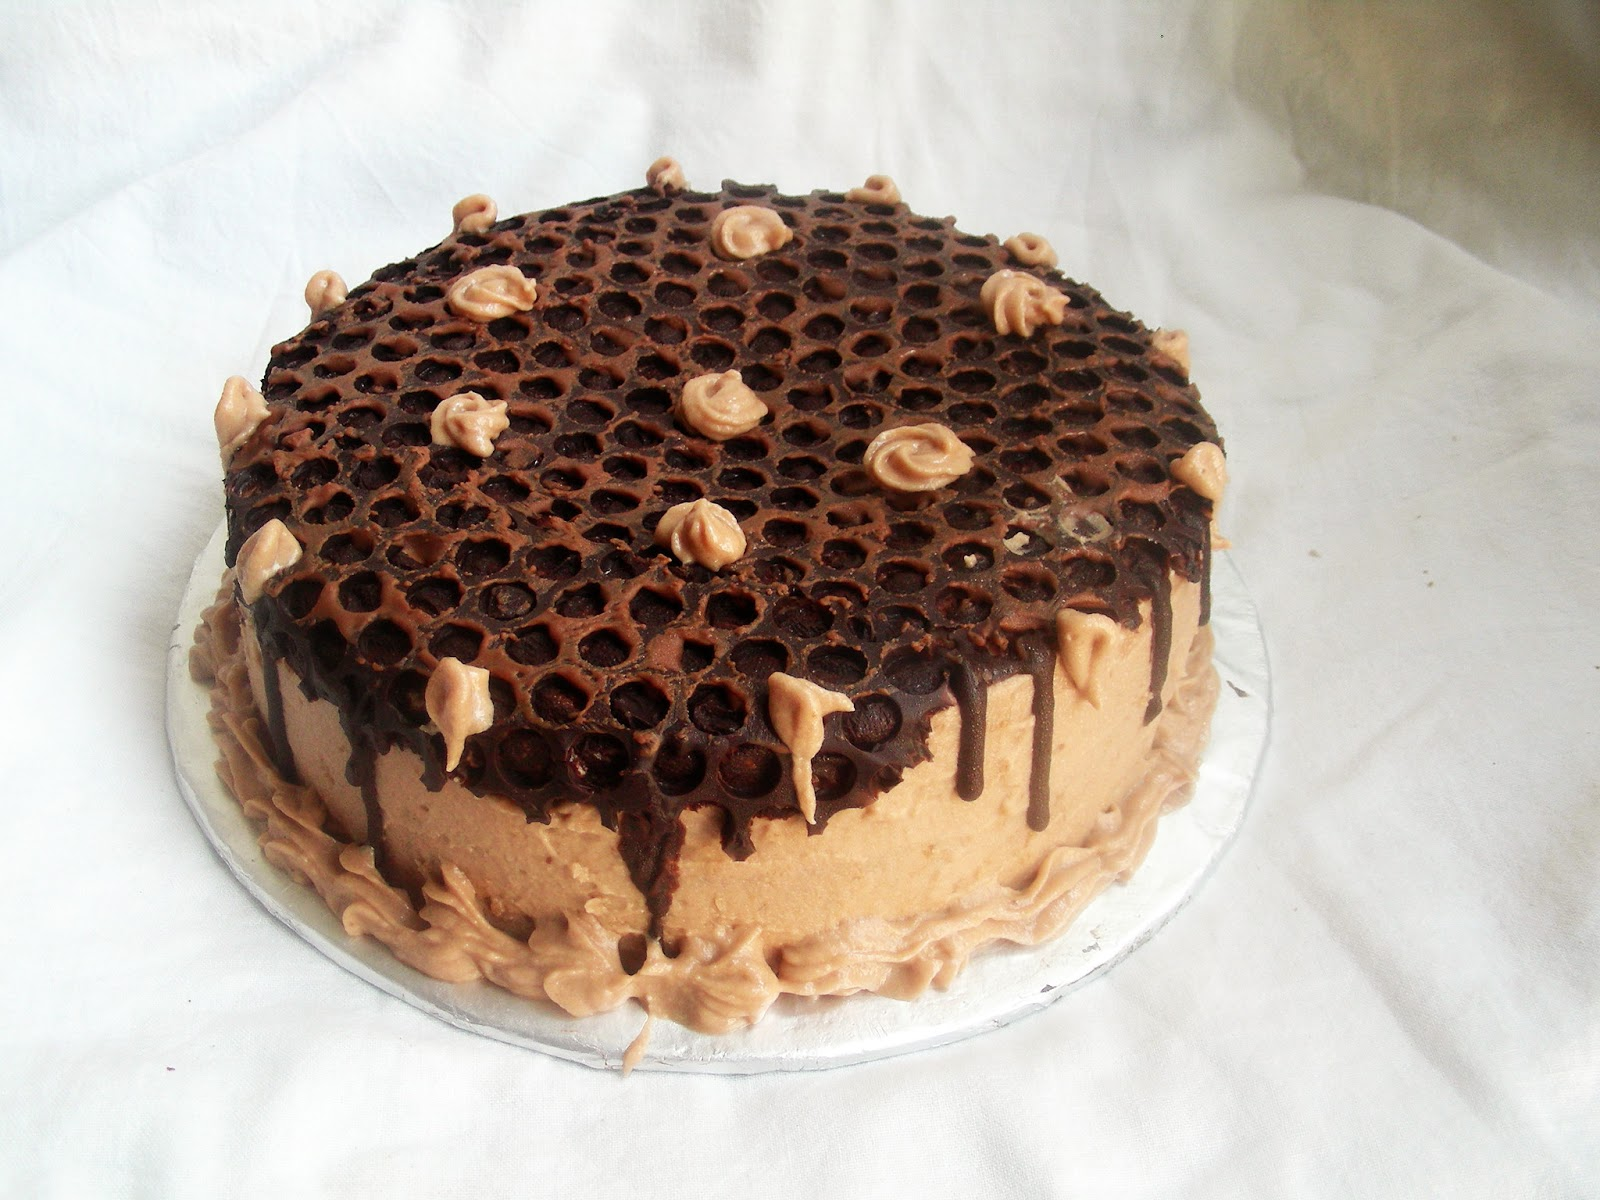 Chocolate Honeycomb Cake Made With Bubble Wrap Images